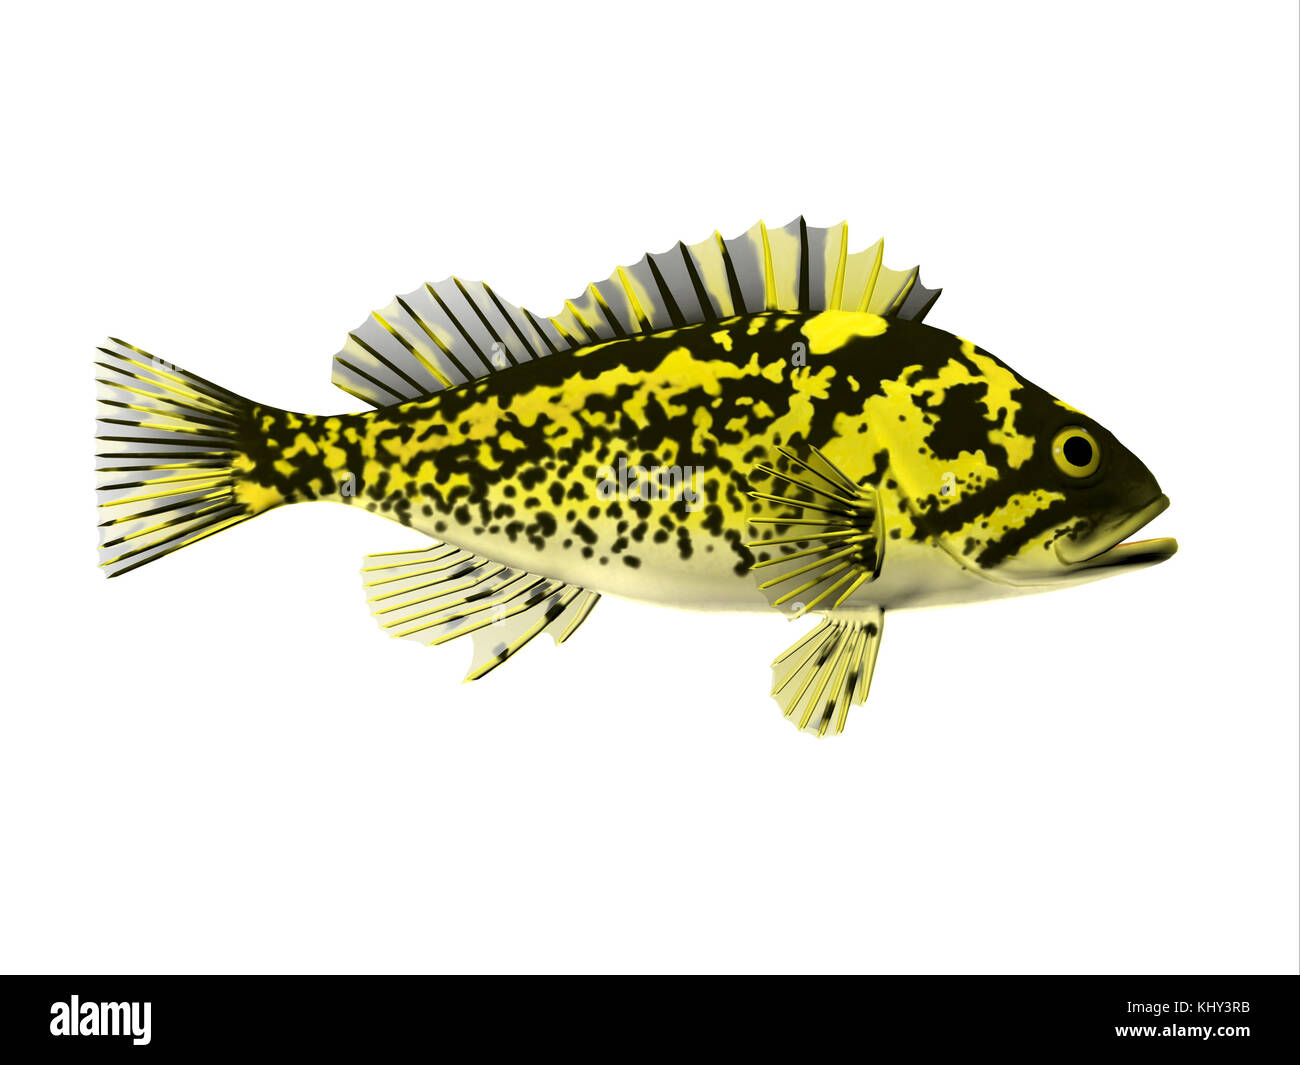 Black and Yellow Rockfish - Rockfish spend most of the time among rocky crevices and boulders in the Pacific ocean - Stock Image